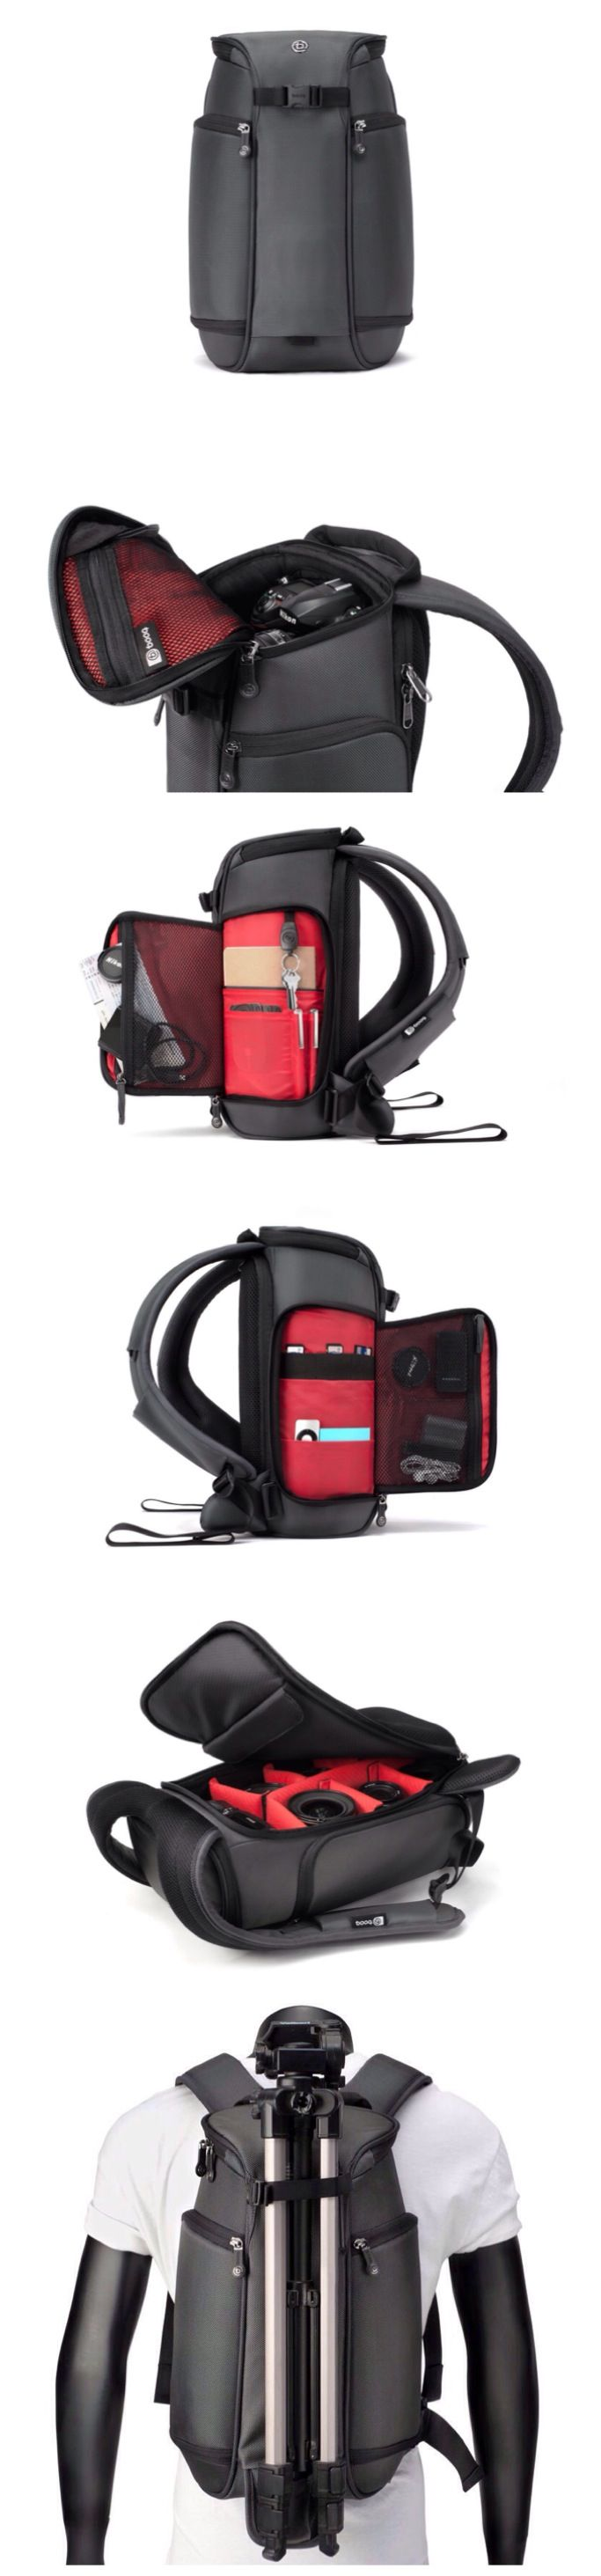 """Booq Python Slimpack -   Python slimpack is a compact backpack designed for 1-2 DSLRs, up to 4 mid-size lenses, 1 large zoom lens, tripod, plus a 10"""" iPad."""